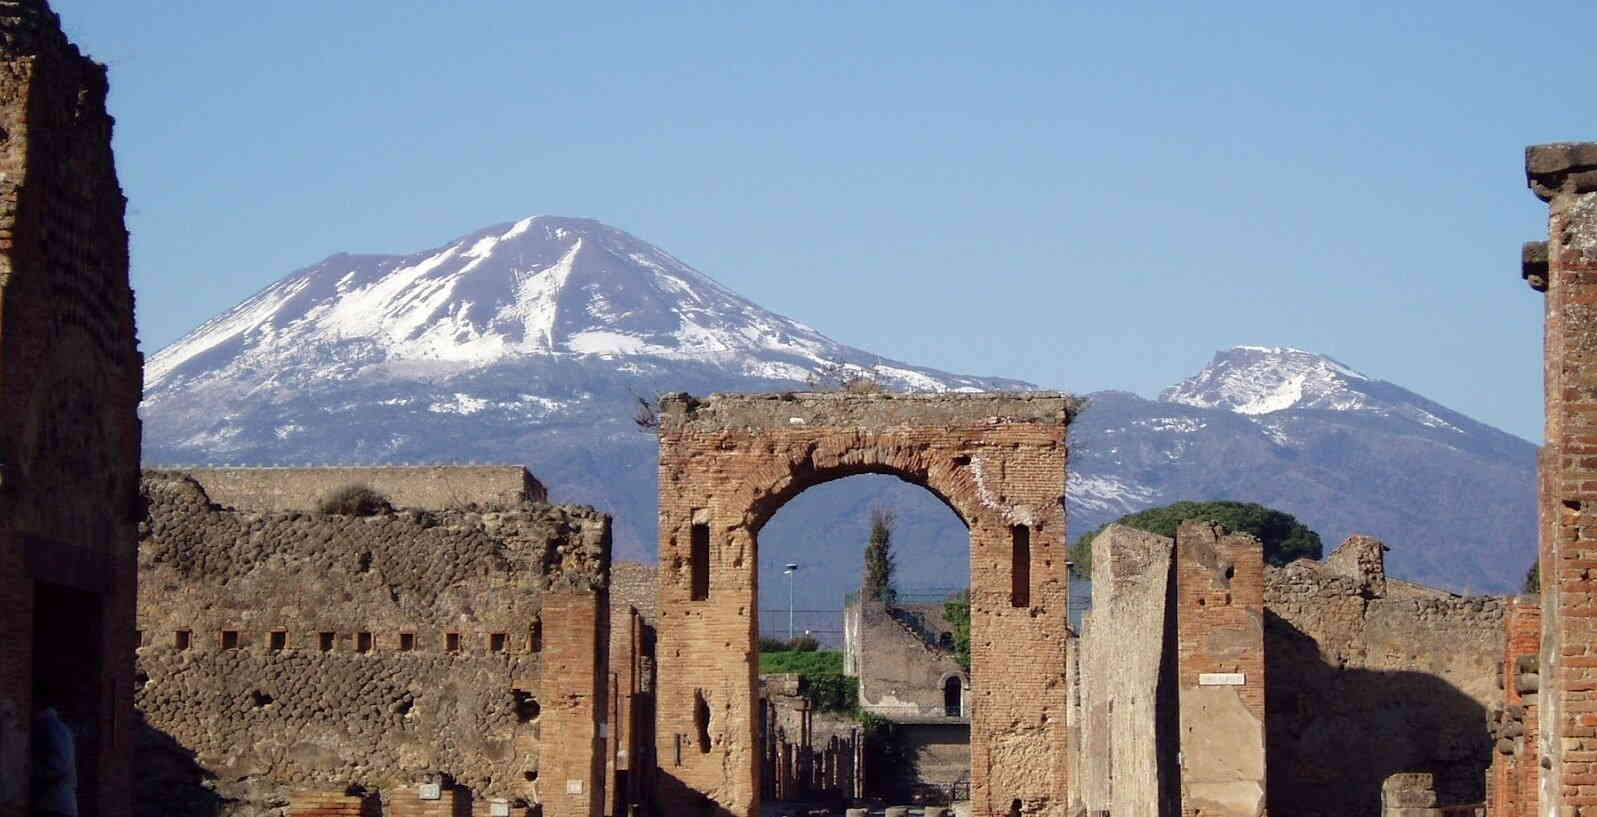 The Most Dangerous Volcano in the world?